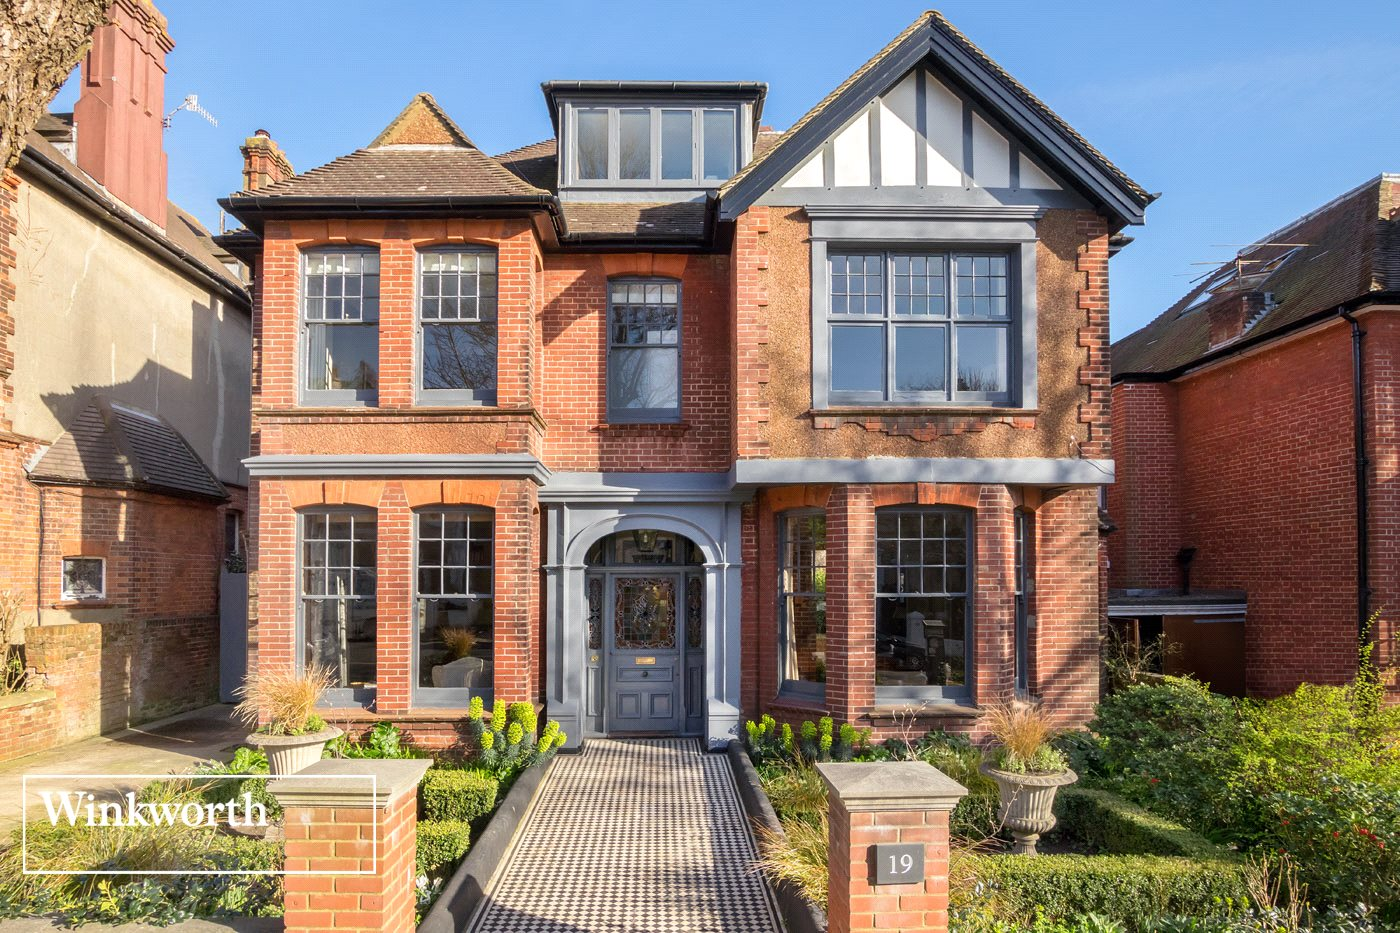 6 Bedrooms Detached House for sale in Wilbury Gardens, Hove, East Sussex, BN3